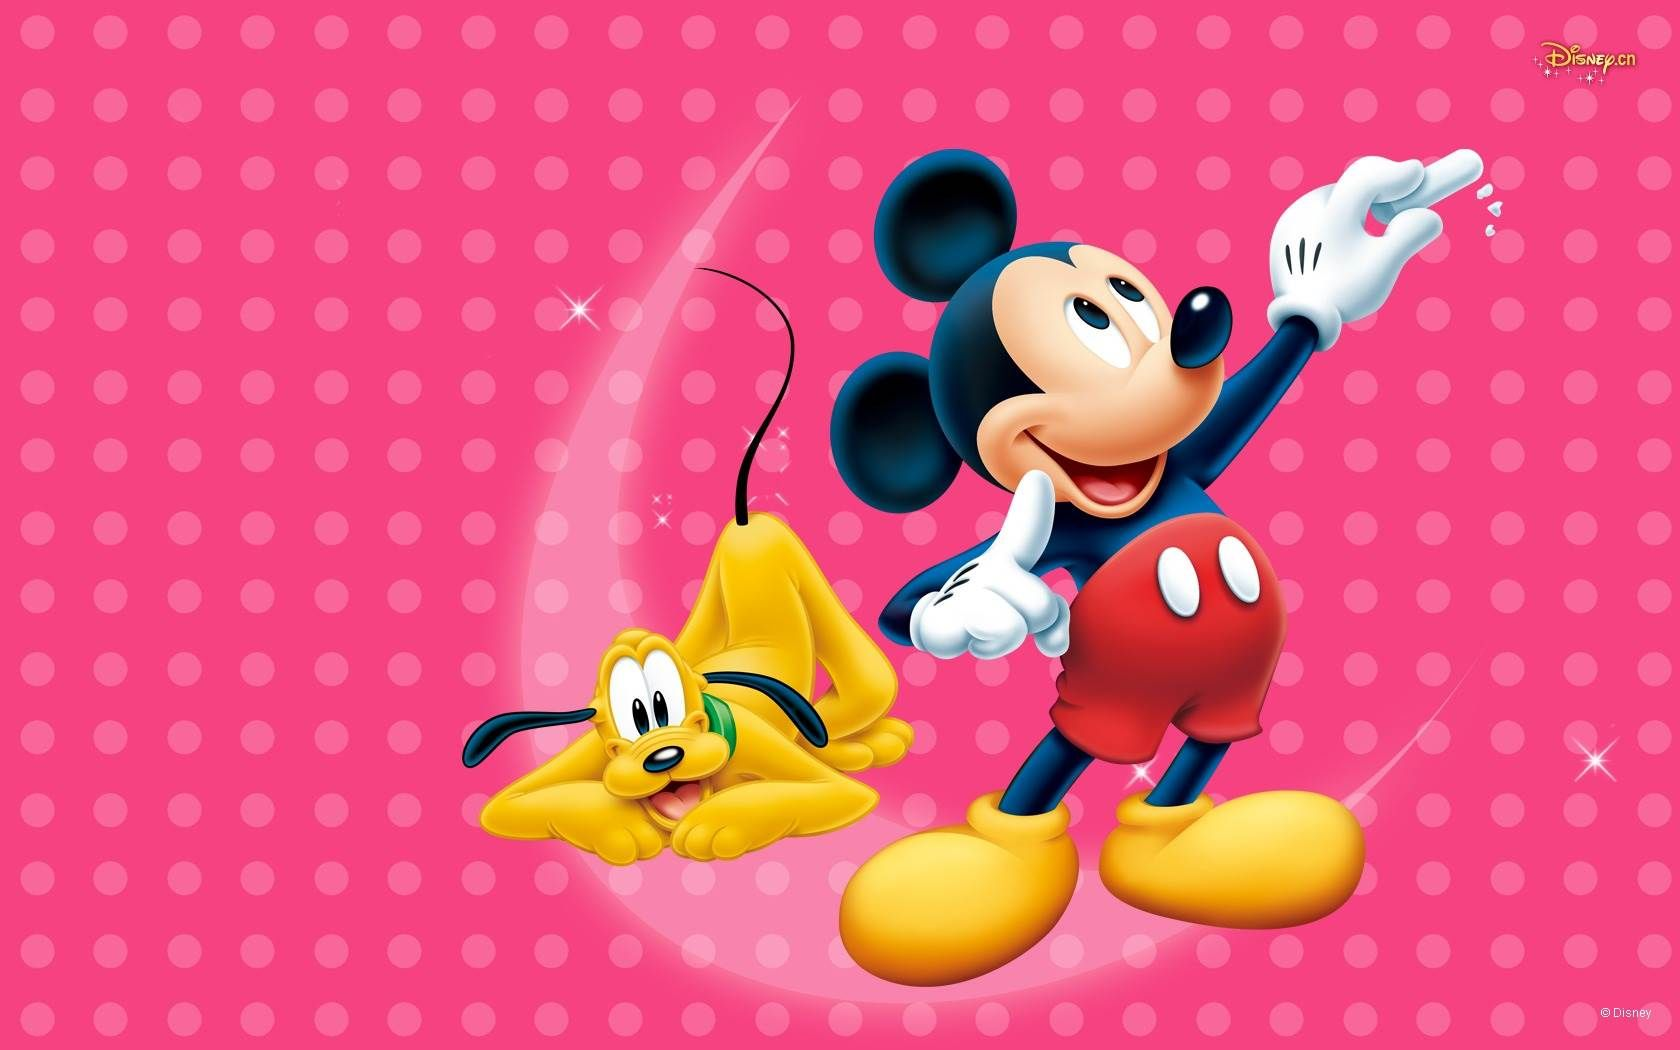 Mickey Mouse Wallpaper For Ipad 1600 1200 Mickey Mouse Wallpaper